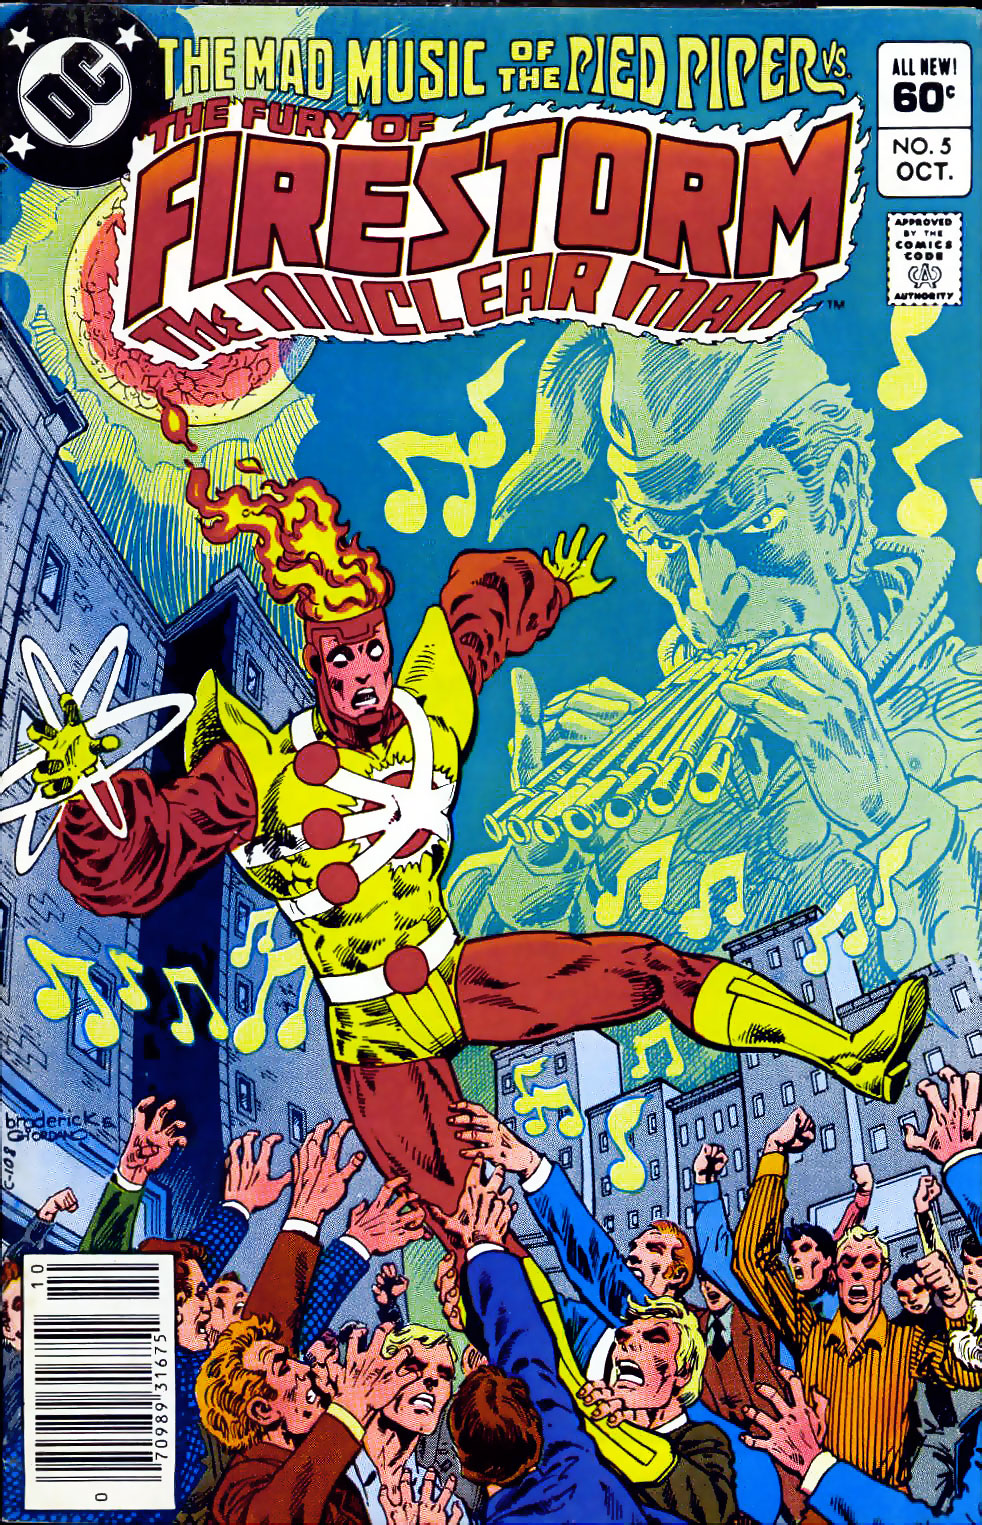 Fury of Firestorm The Nuclear Man #5 cover by Pat Broderick and Dick Giordano